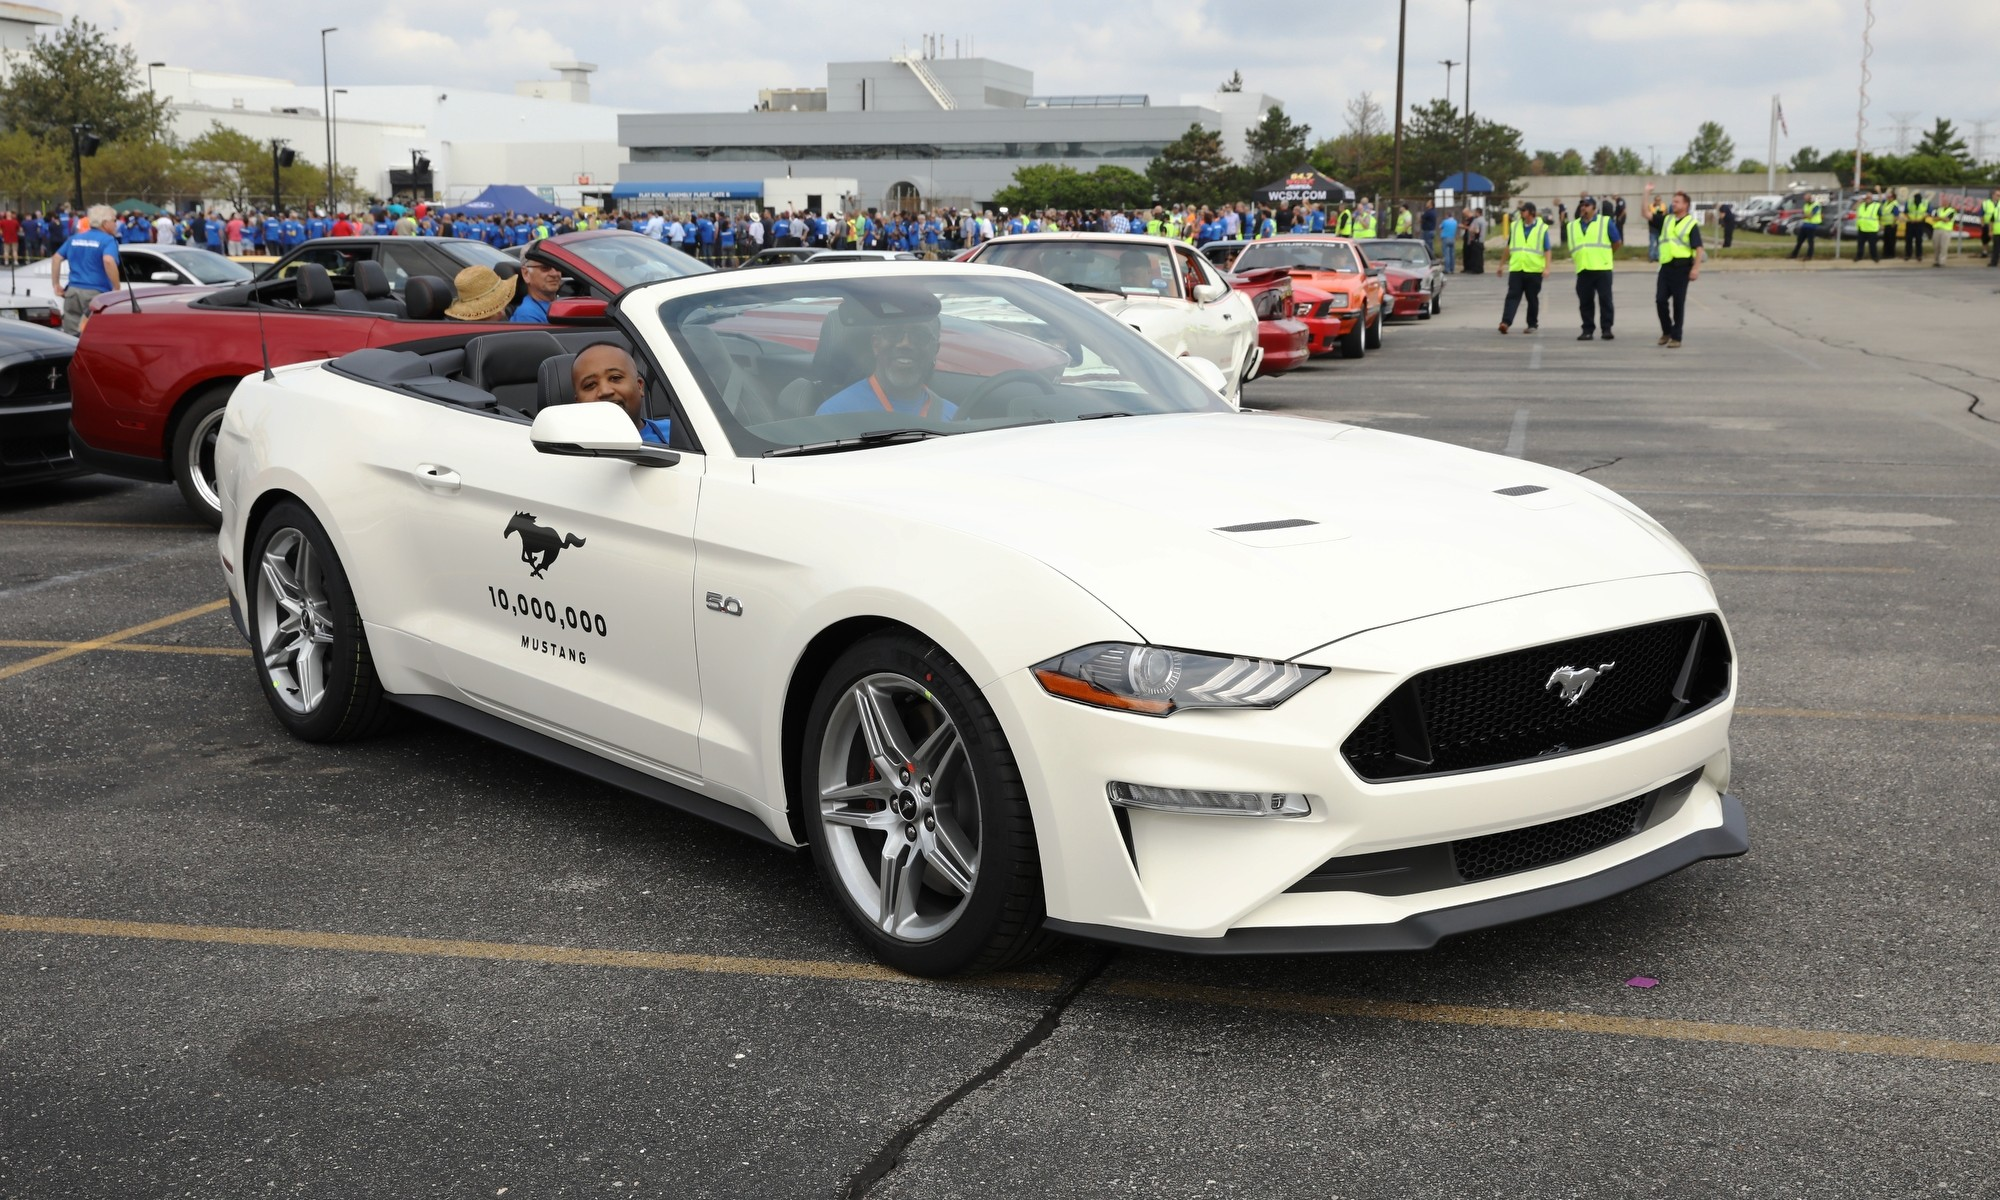 That is the 10 Millionth Ford Mustang